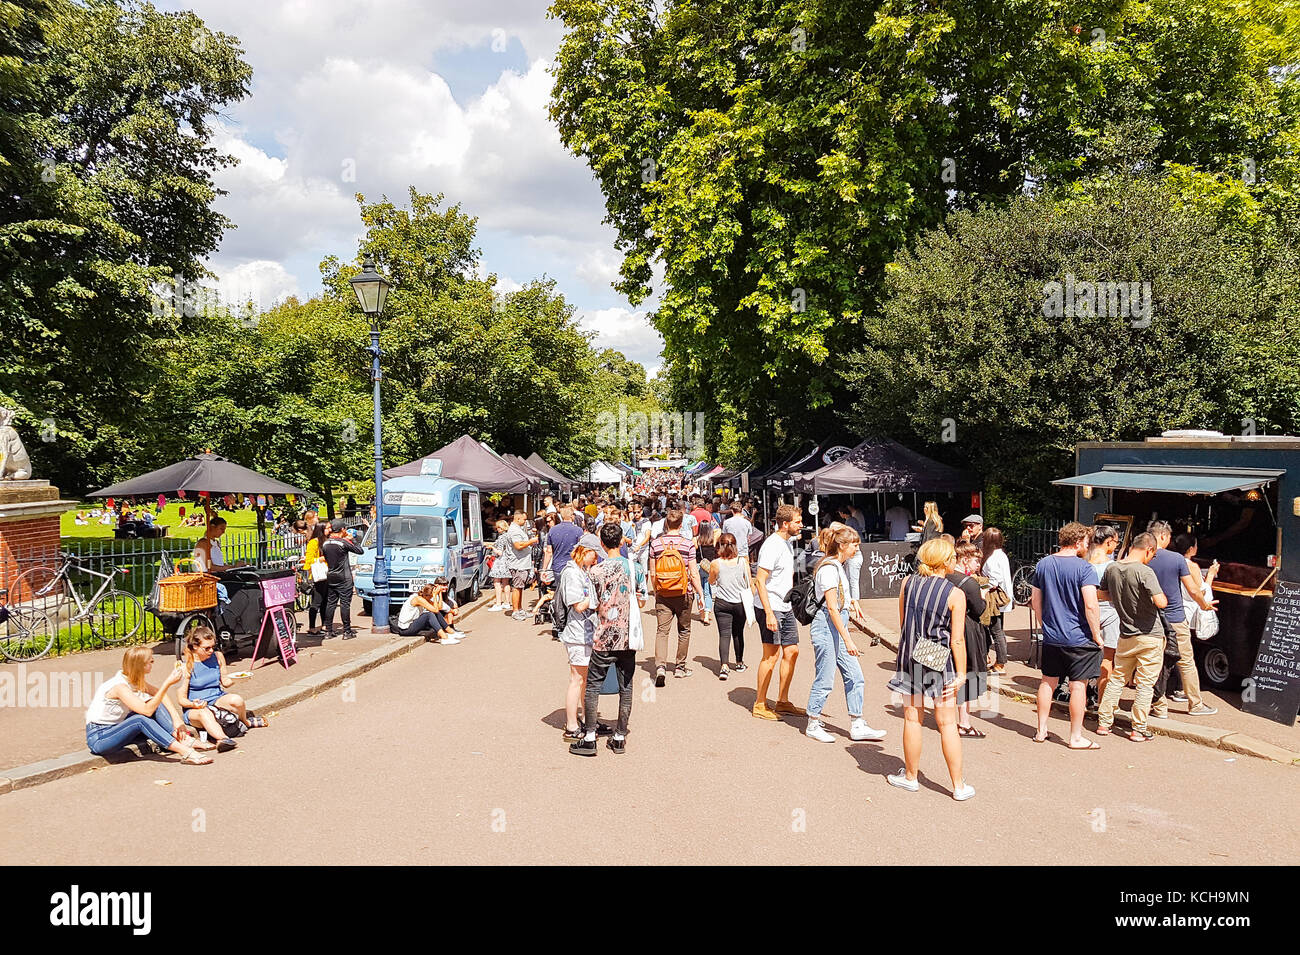 LONDON, ENGLAND - AUGUST 6, 2017; Crowd flocks to Victoria Park Saturday Market in lovely summer day to socialise - Stock Image